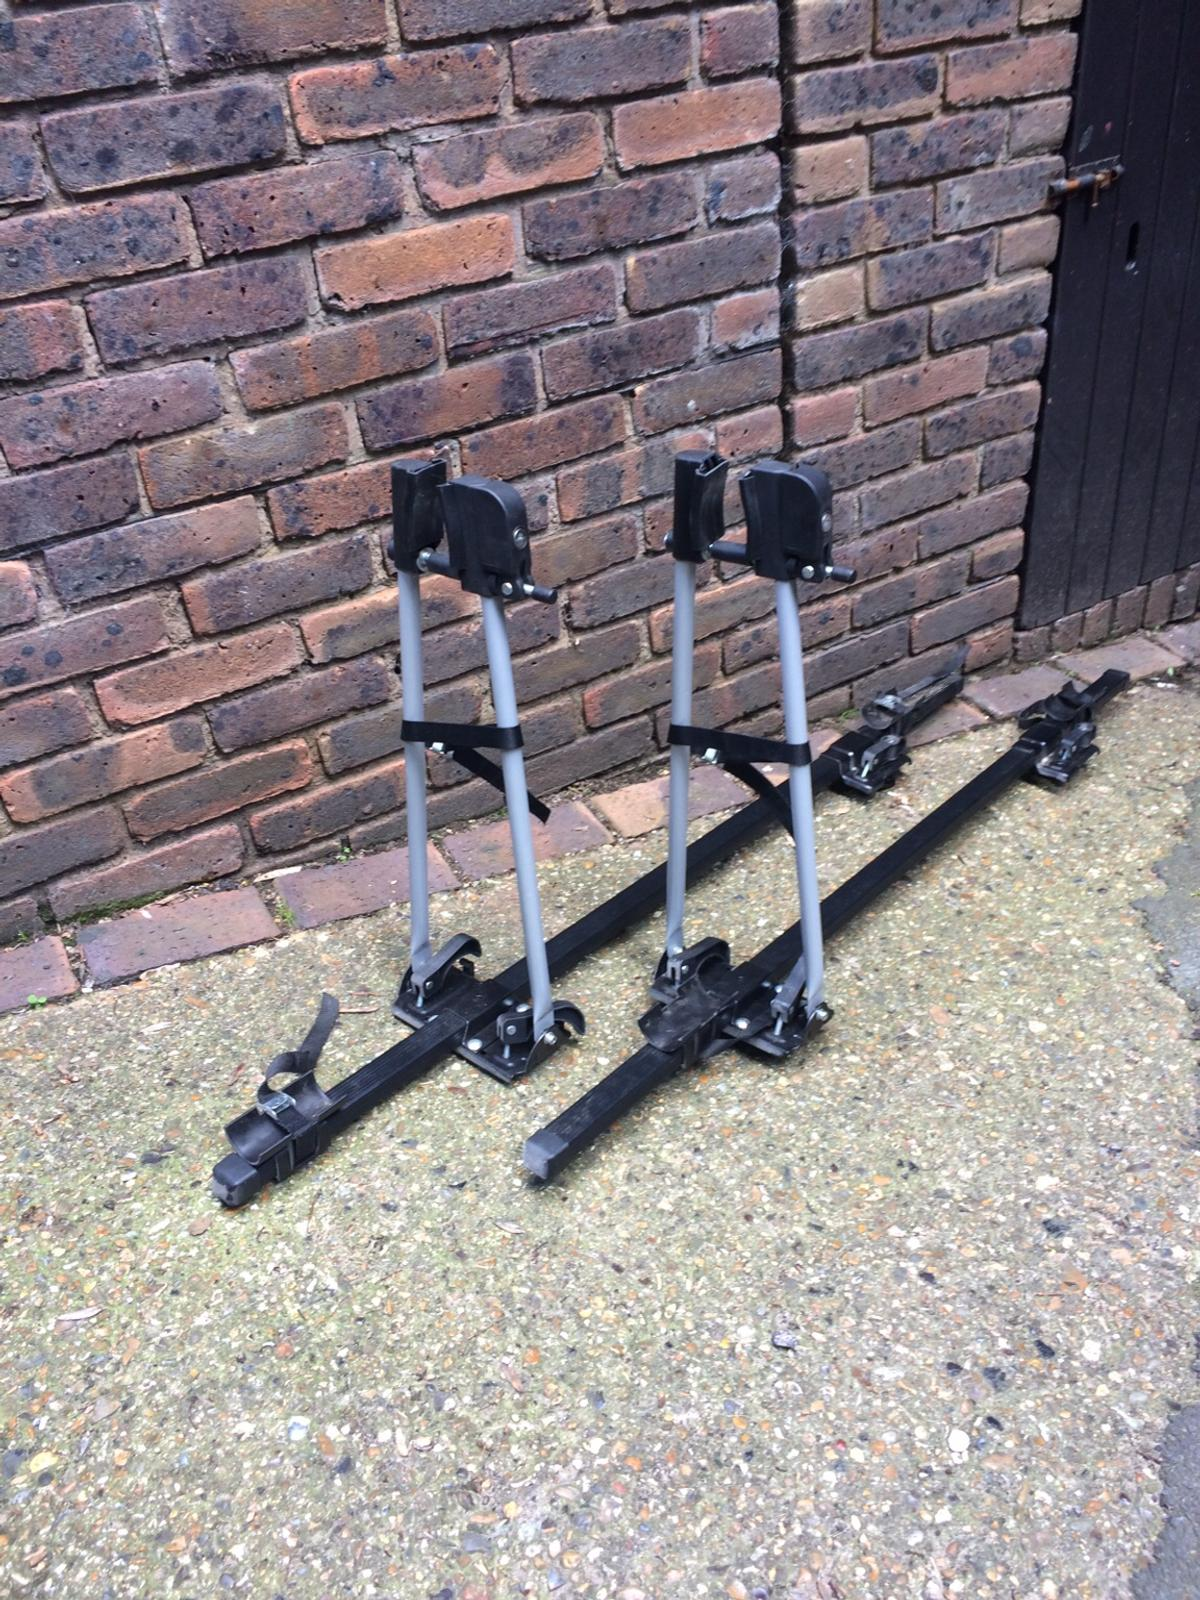 Two roof bar cycle carrier for sale both in excellent condition cycles can be locked to the carrier for added security